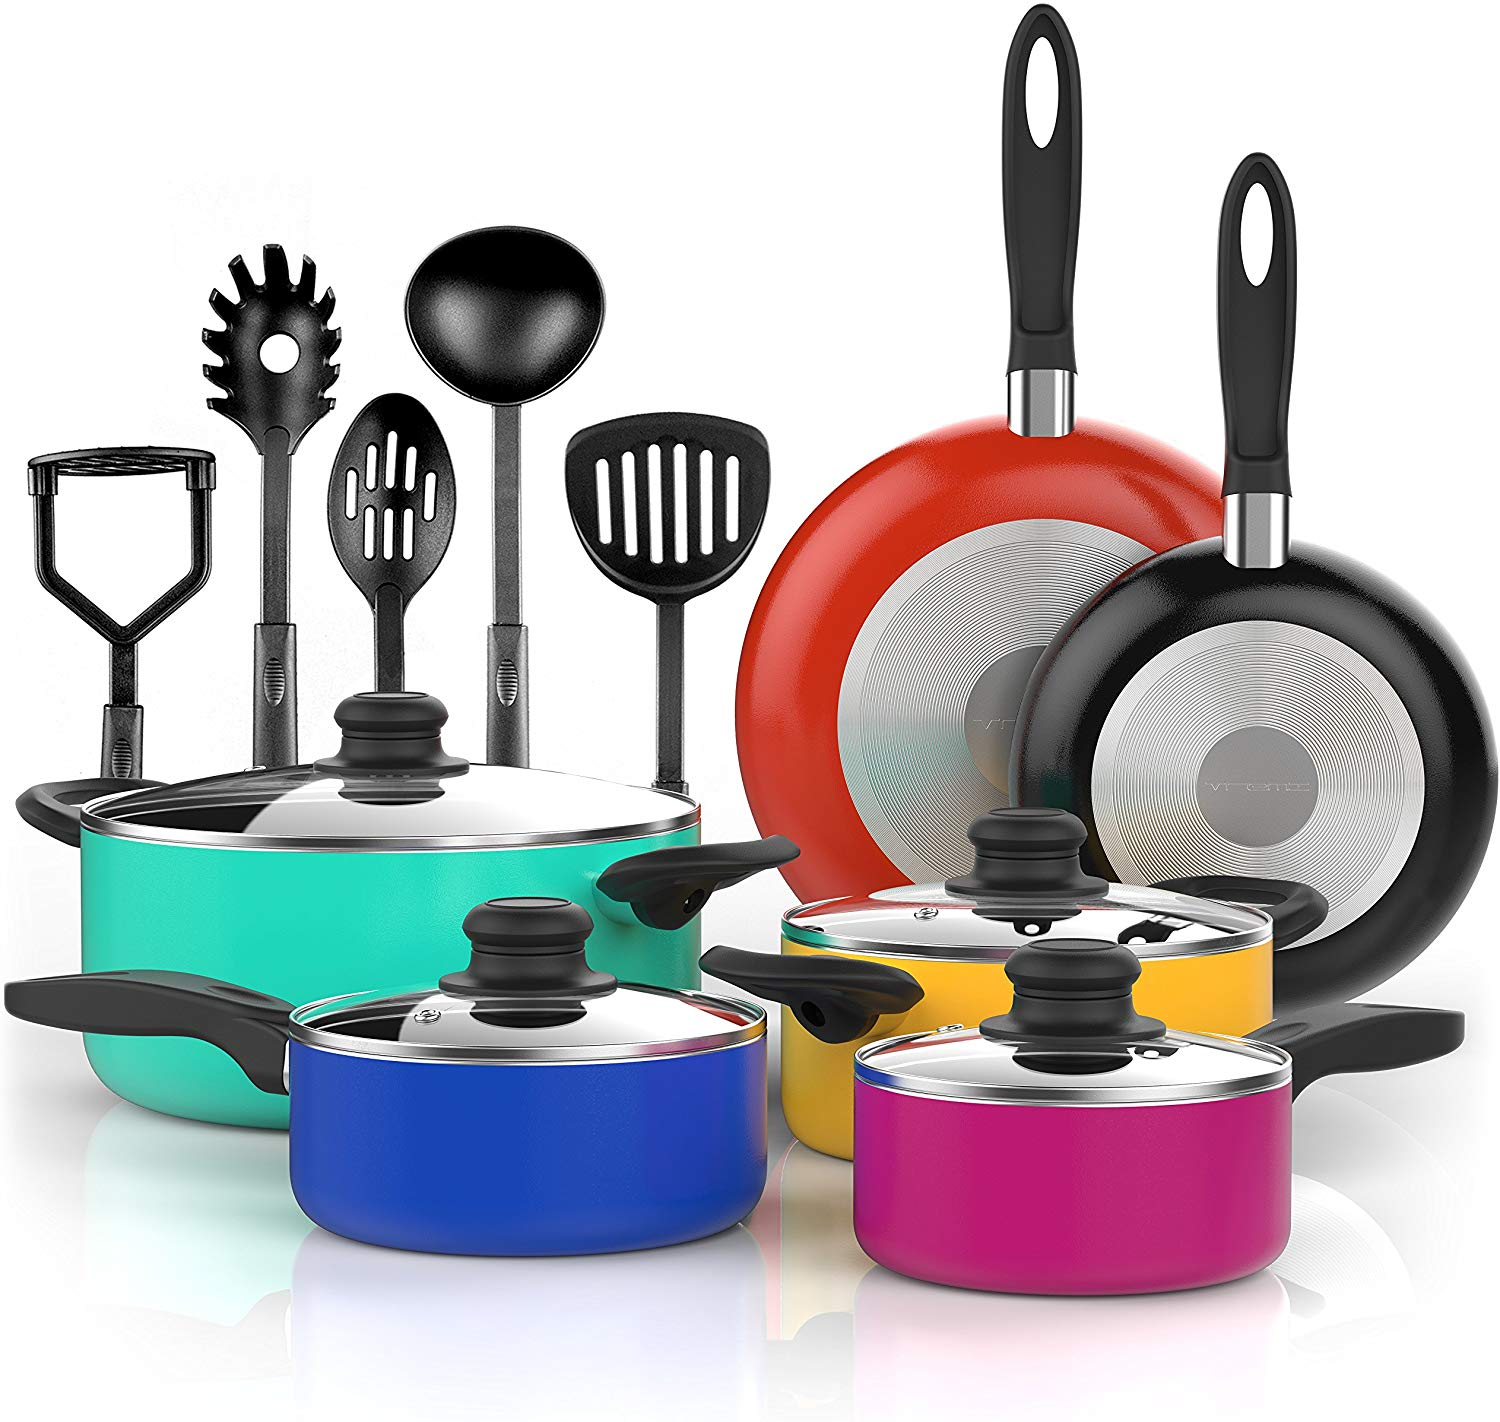 Vremi 15 Piece Nonstick Cookware Set